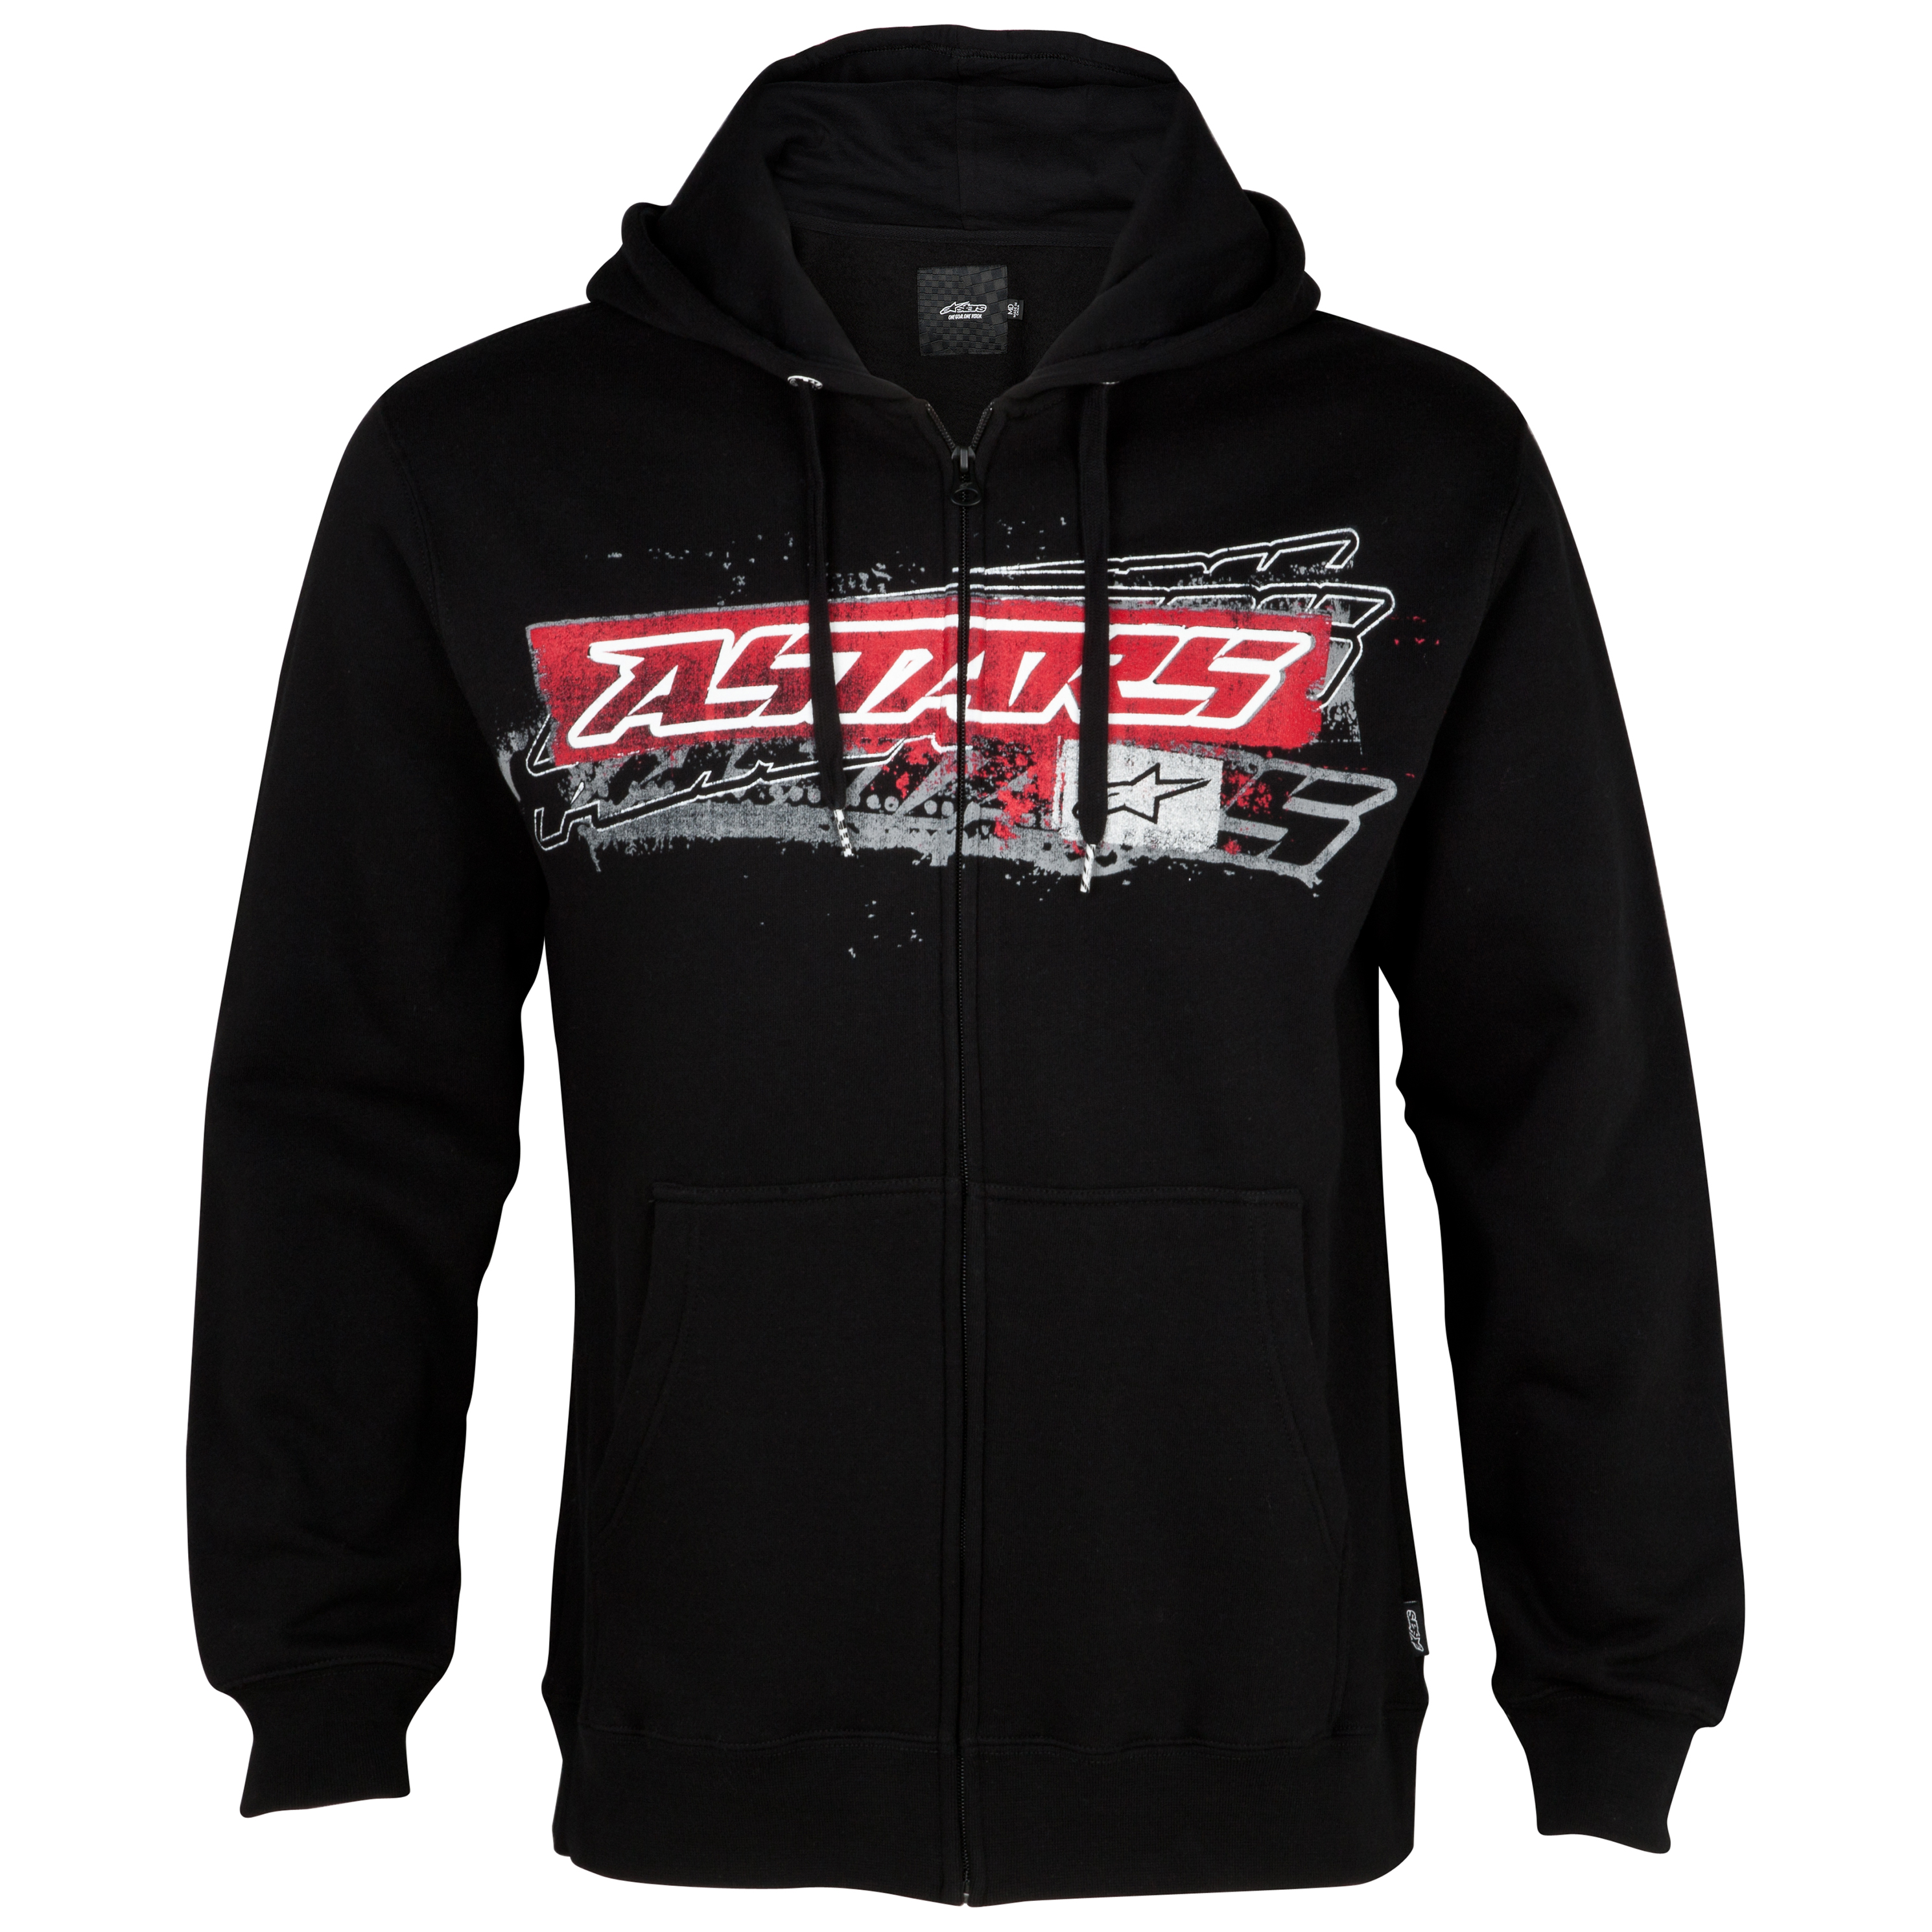 Alpinestar Alpinestars Quickie Zip Fleece - Black